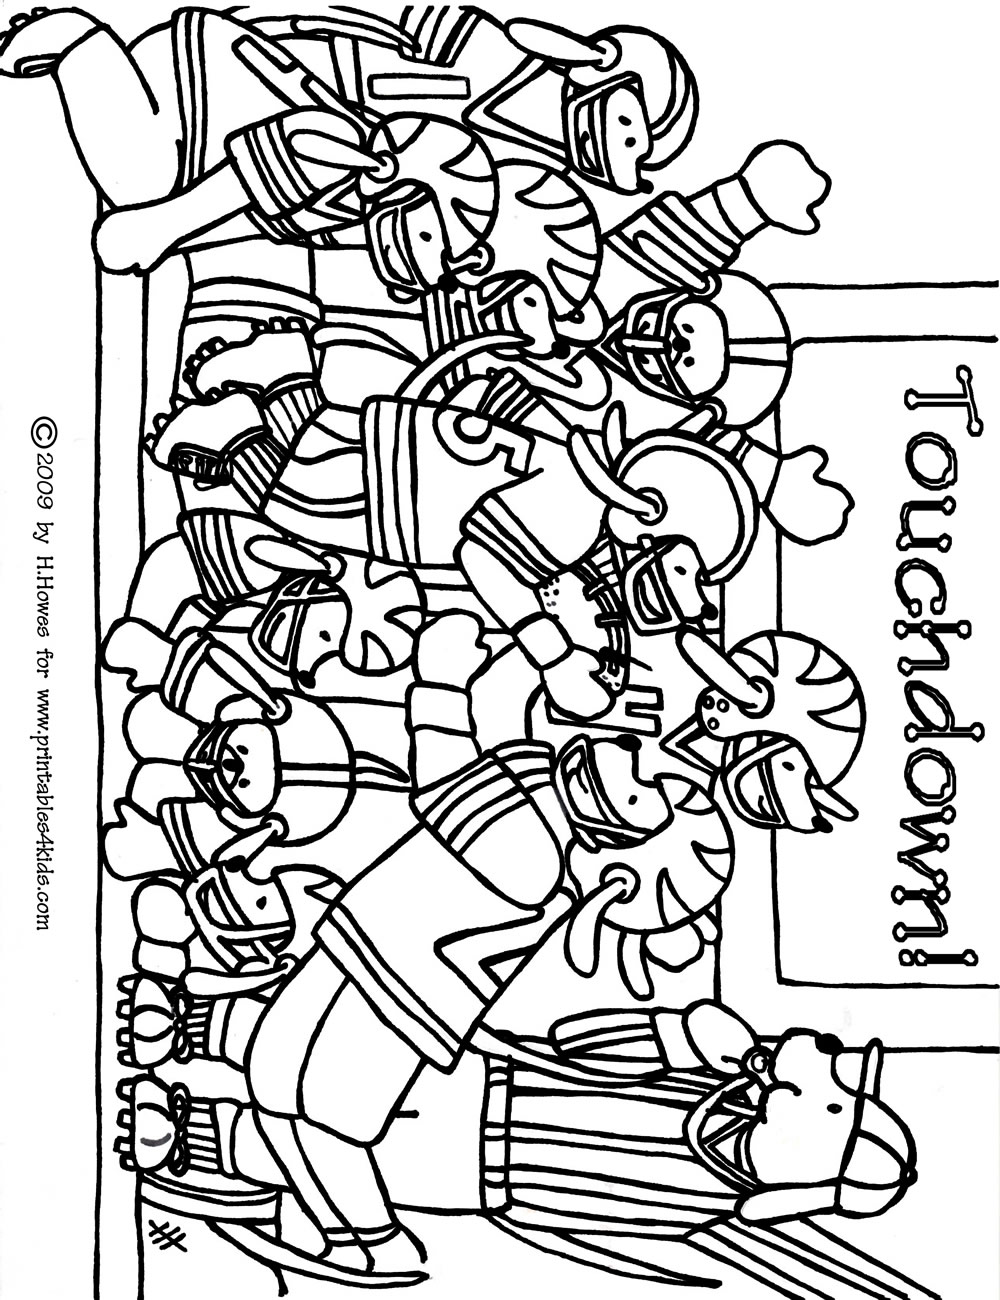 Football Game Coloring Page Printables for Kids free word